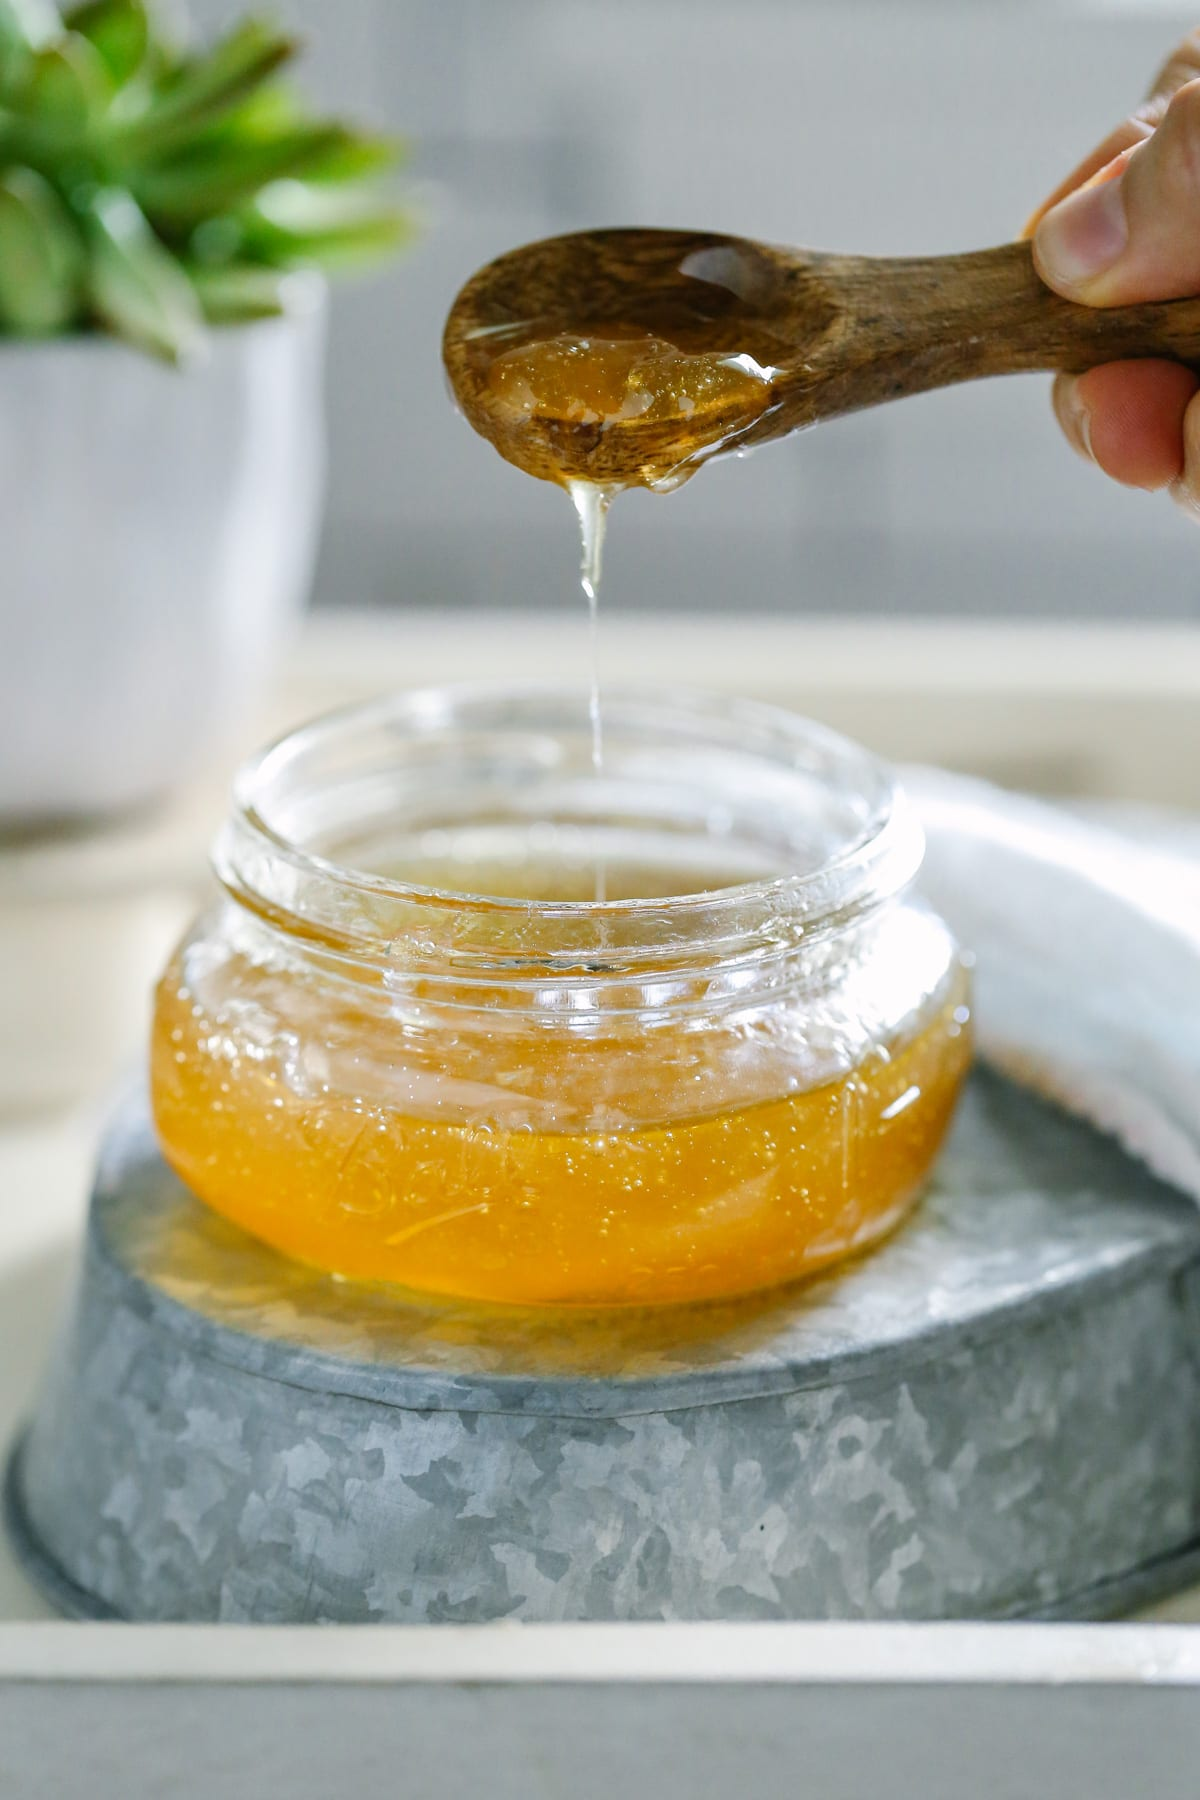 Homemade Honey and Aloe Facial Cleanser. This is super easy to make. So easy